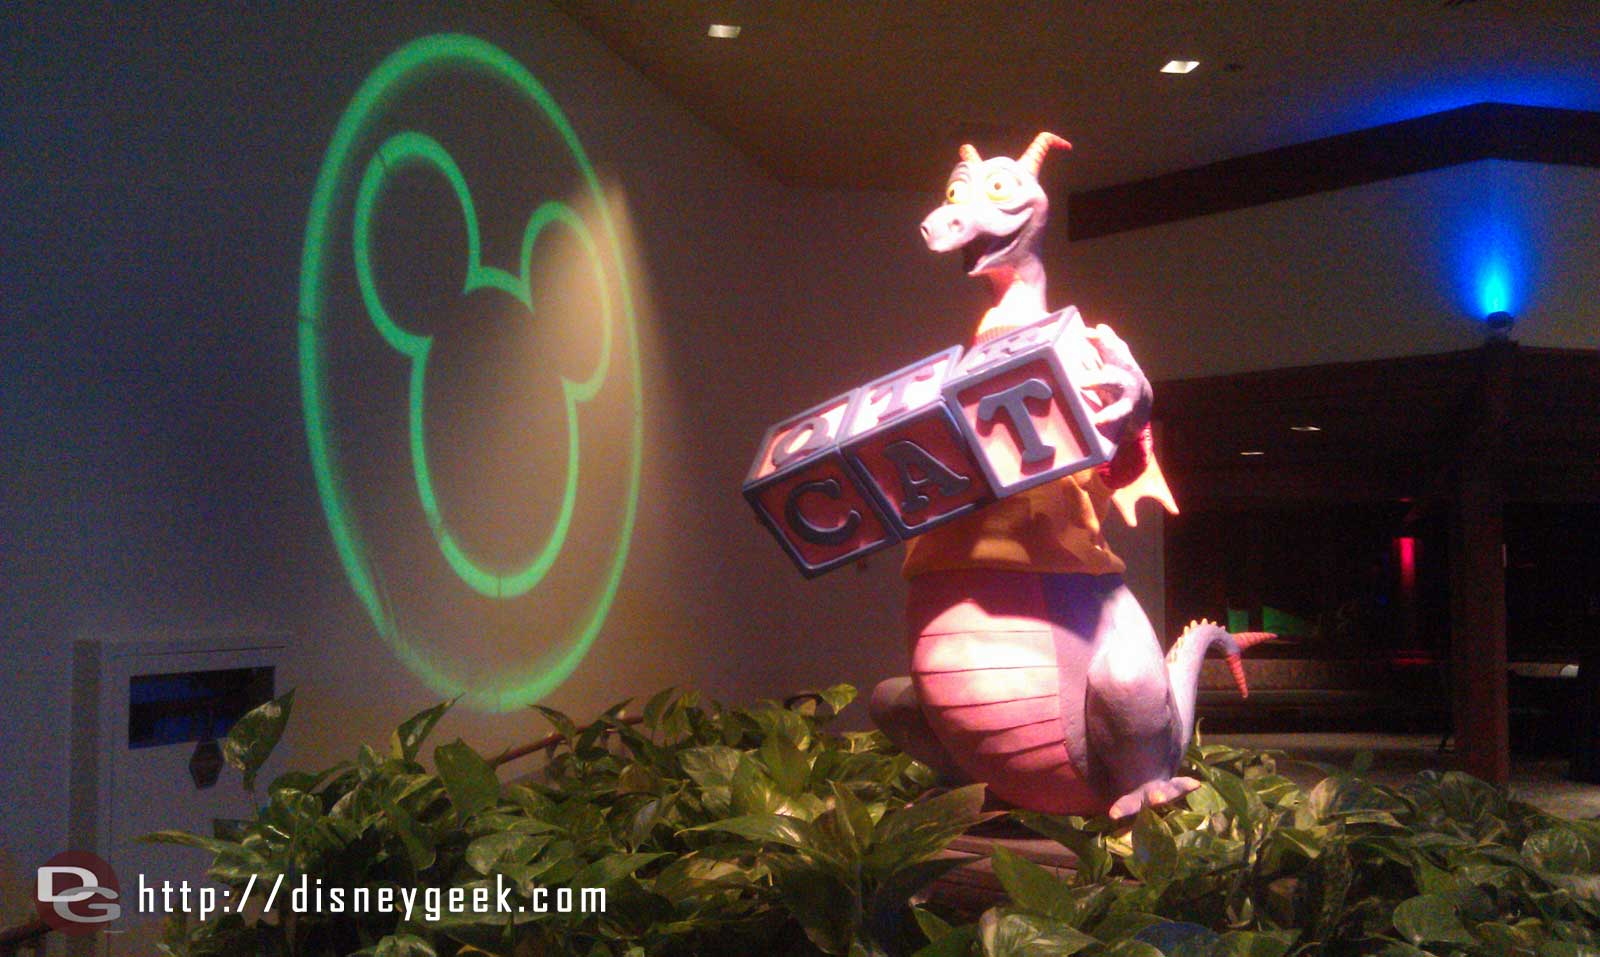 Stopped by the Odyssey to exchange my pass for a new rfid enabled version, and to see Figment